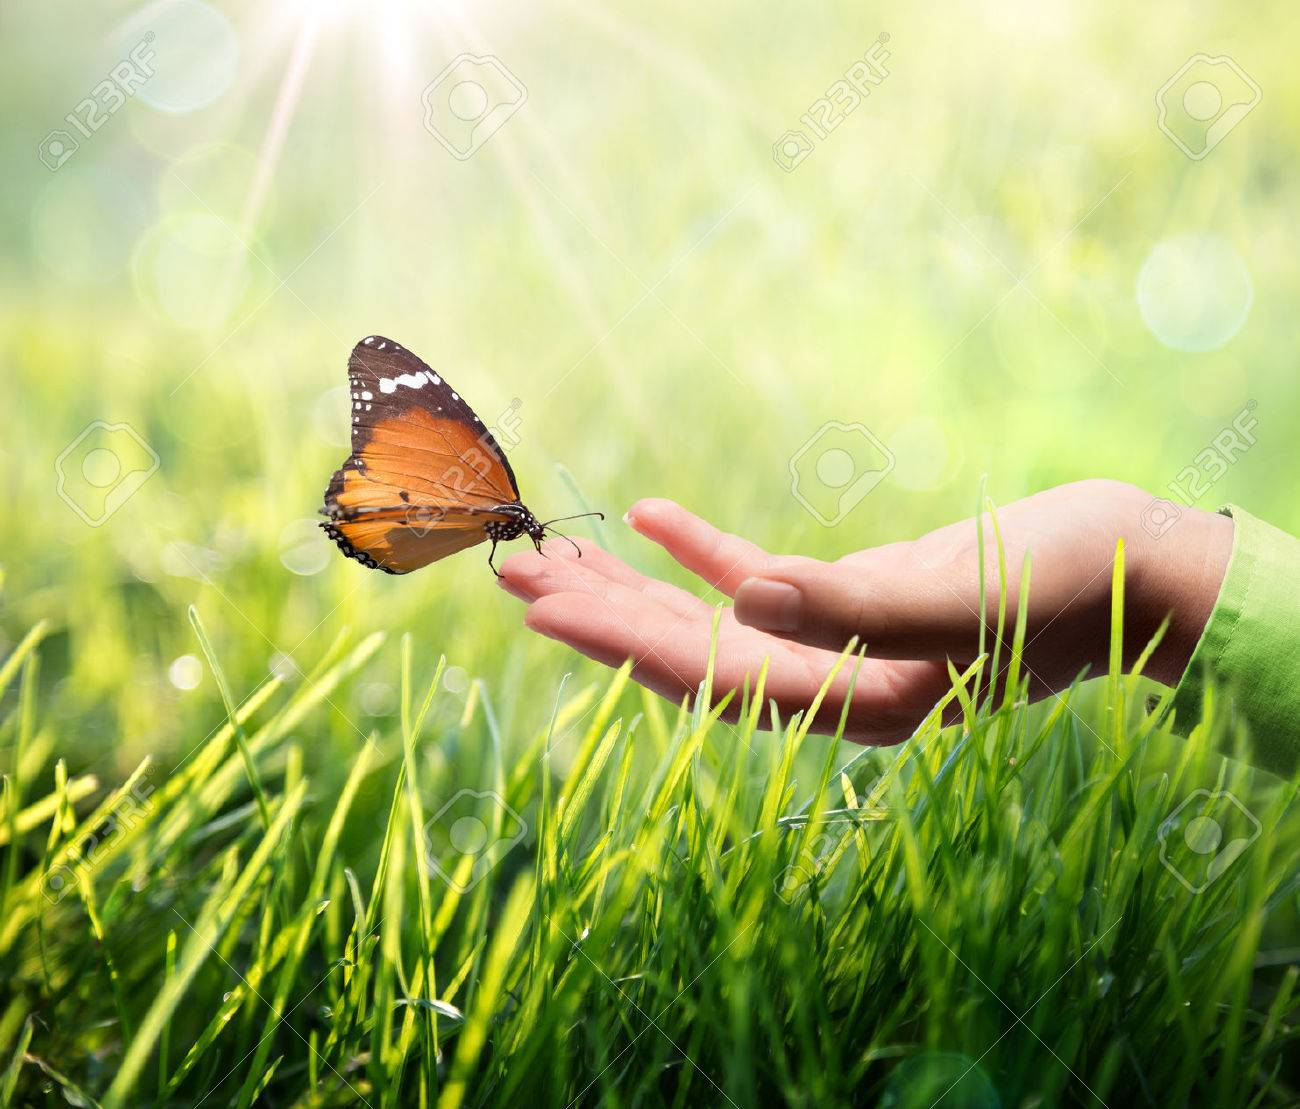 butterfly in hand on grass - 25451299